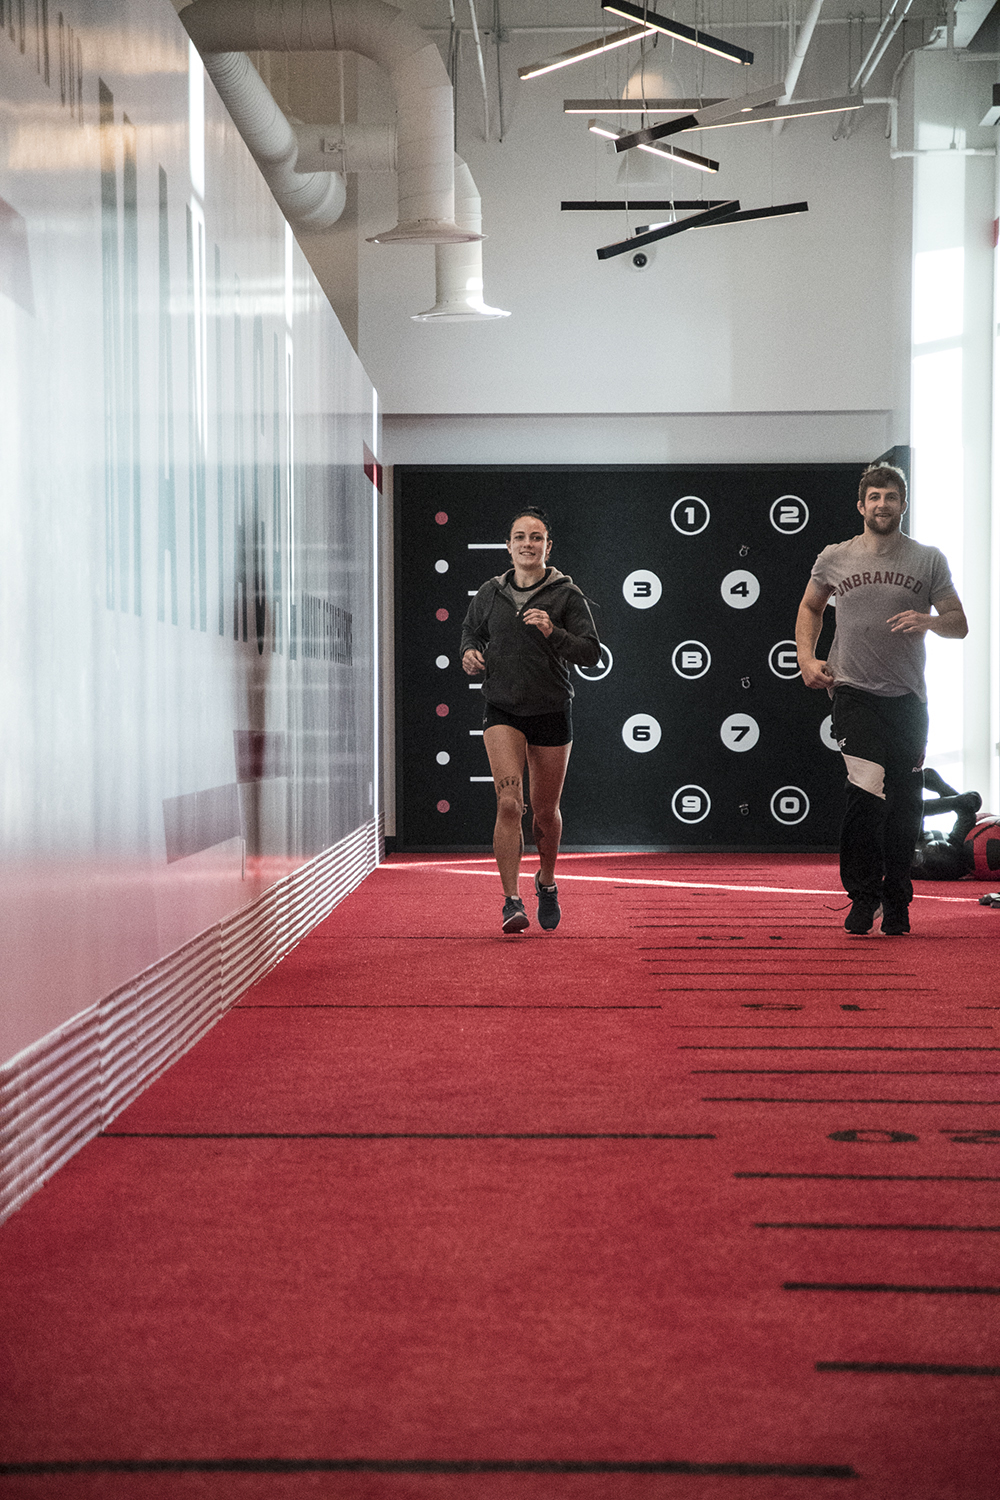 During the afternoon, Jessica-Rose Clark along with her team mate and The Ultimate Fighter winner Andrew Sanchez finished the day at the UFC Performance Institute.